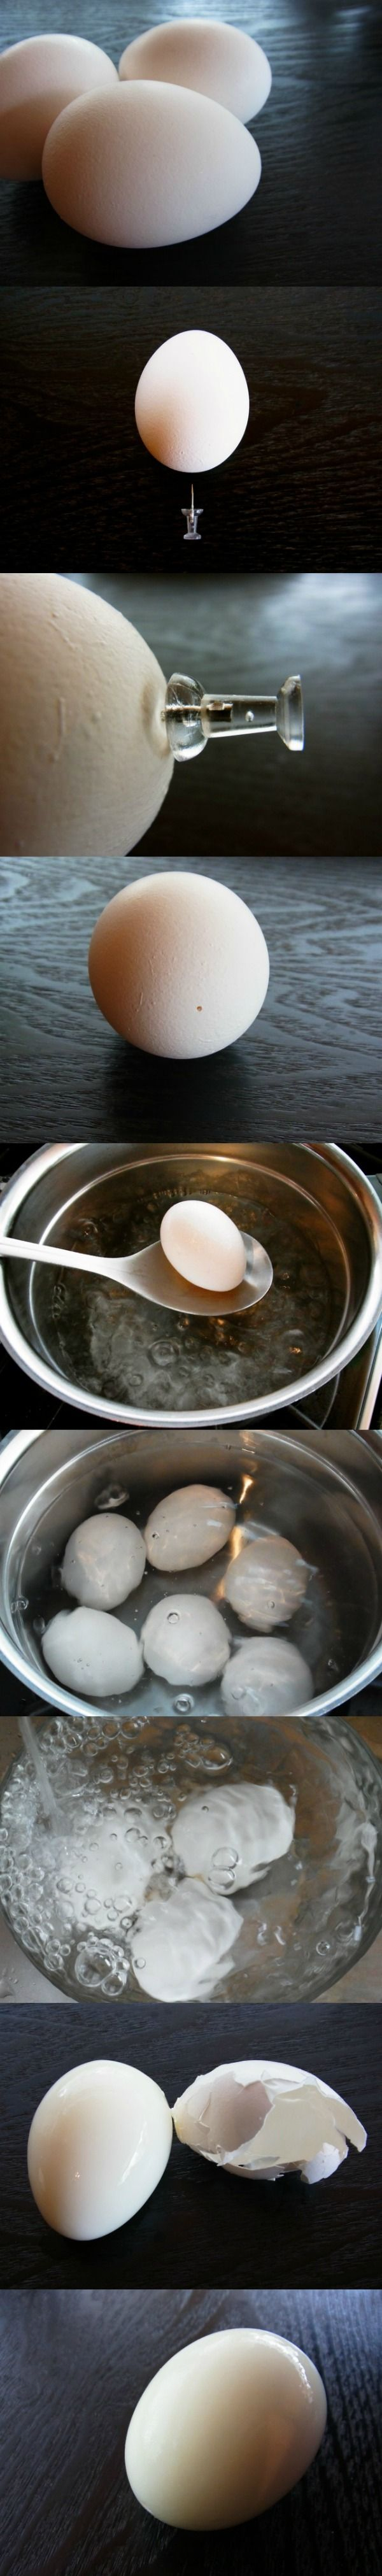 Use this 'pin trick' to get perfectly boiled eggs every time -